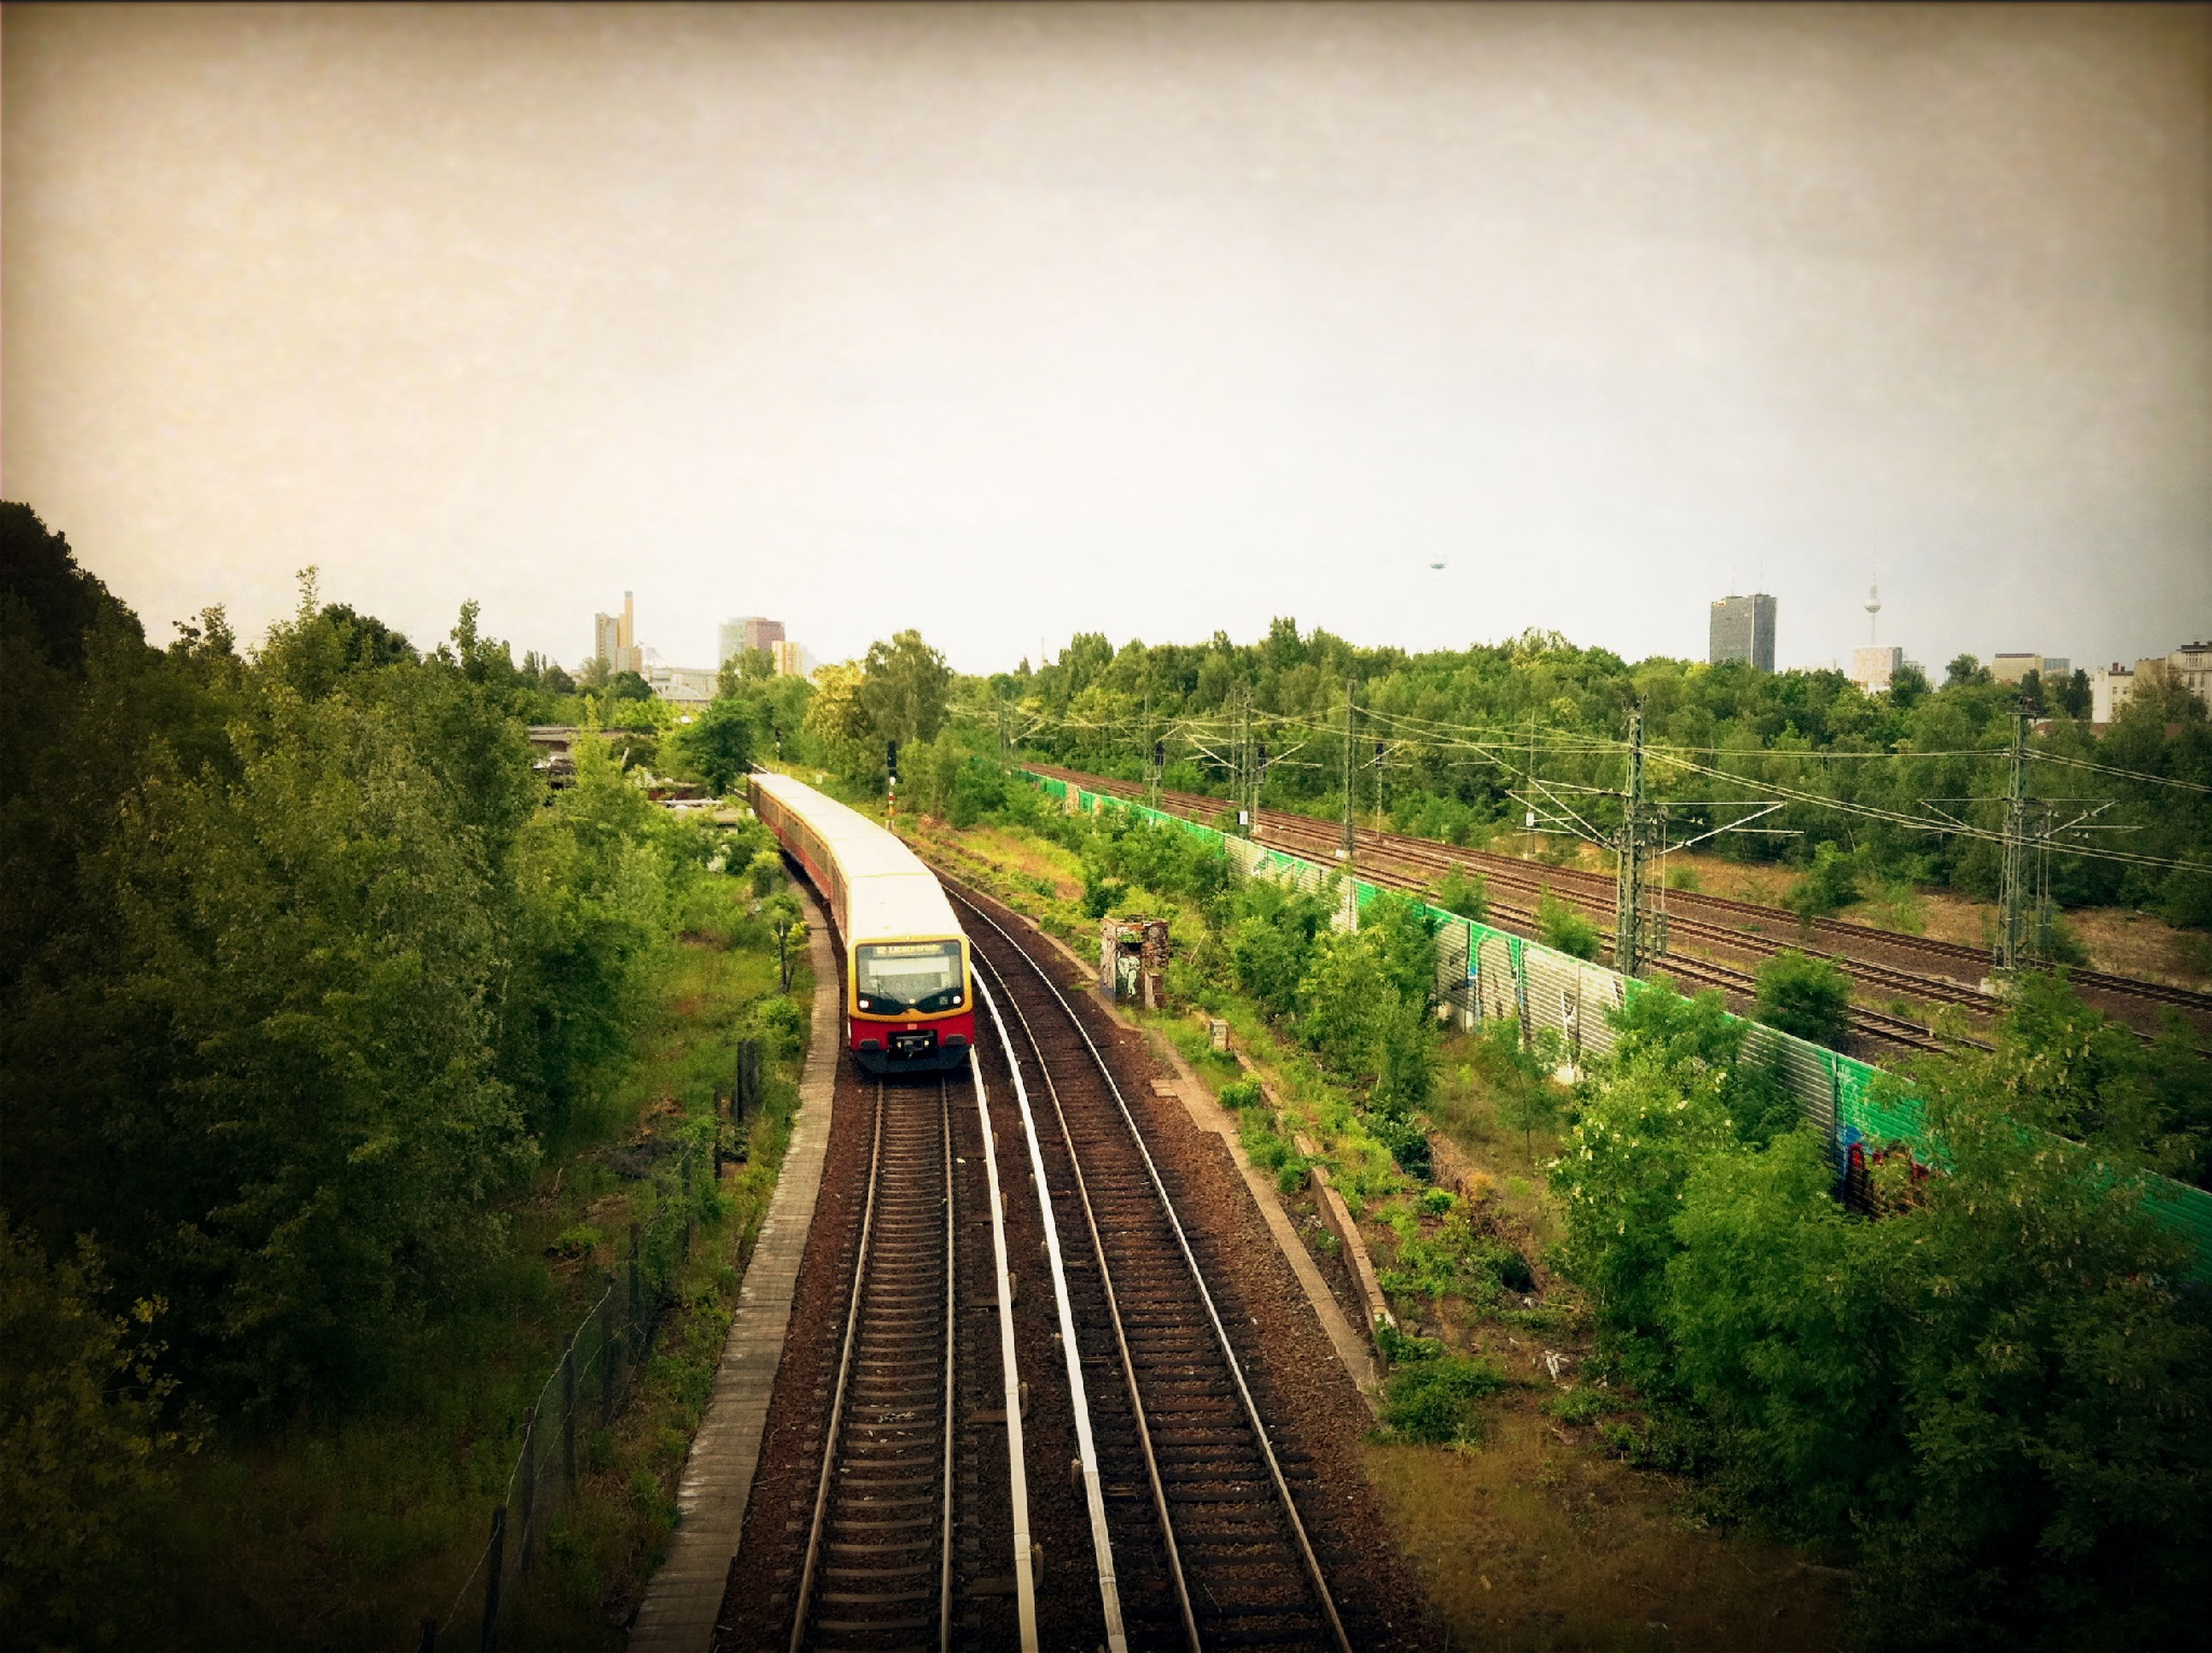 transportation, railroad track, rail transportation, public transportation, mode of transport, train - vehicle, tree, the way forward, clear sky, high angle view, diminishing perspective, on the move, railway track, travel, vanishing point, land vehicle, built structure, train, railroad station, sky